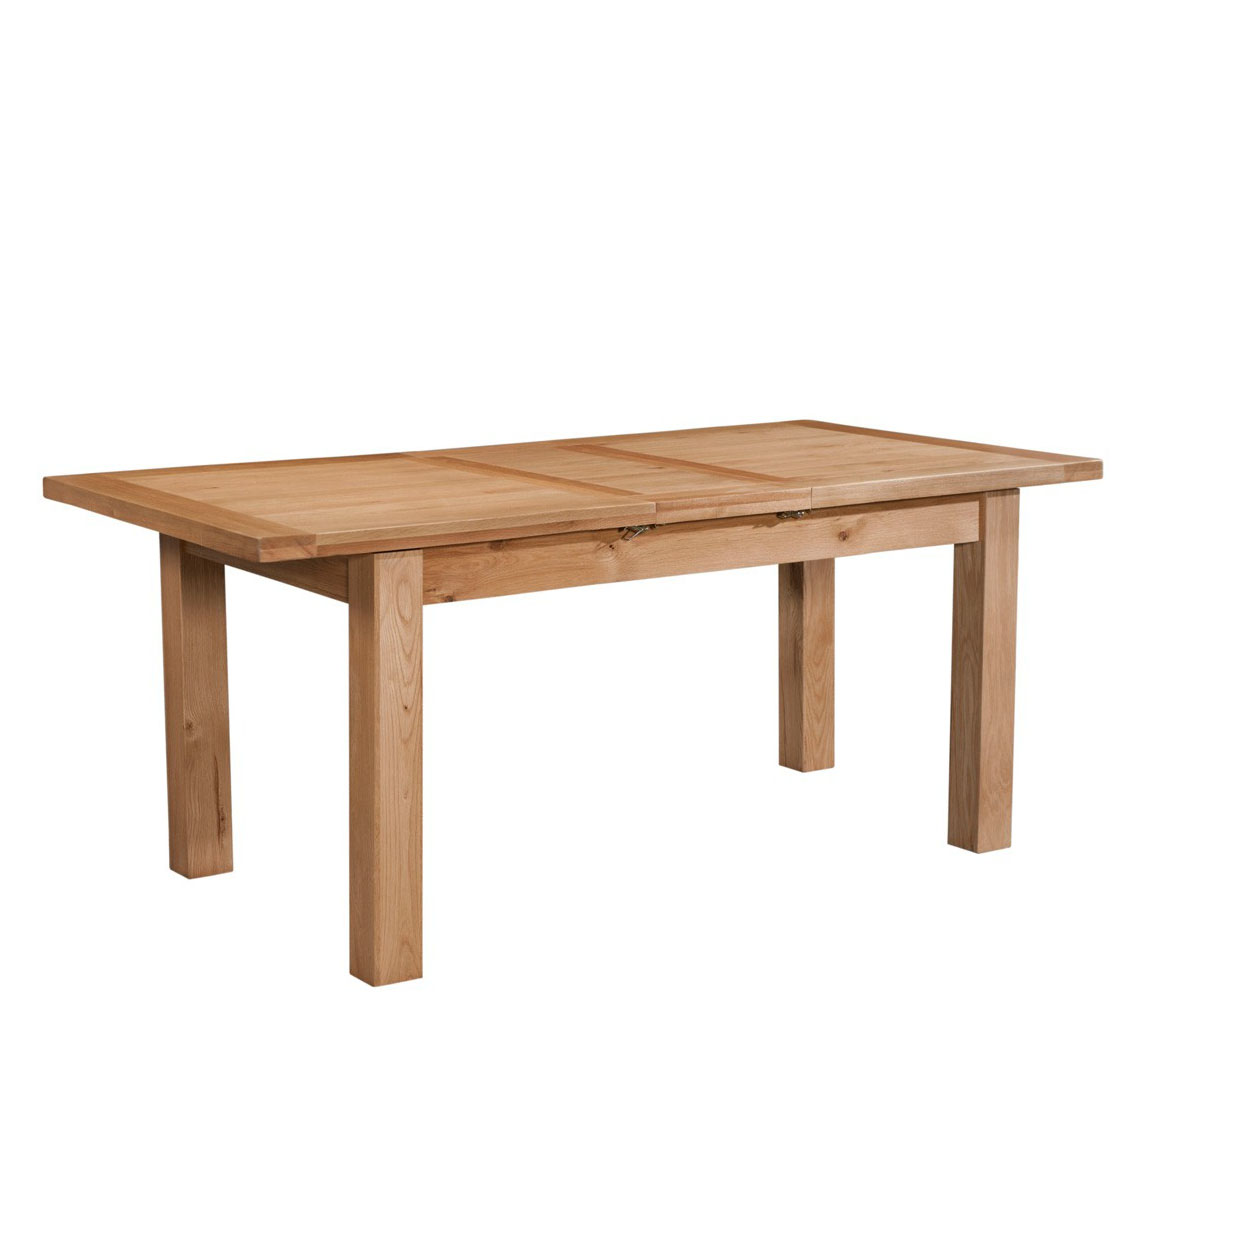 Maiden Oak Dining Table with 1 Extension 120-153cm